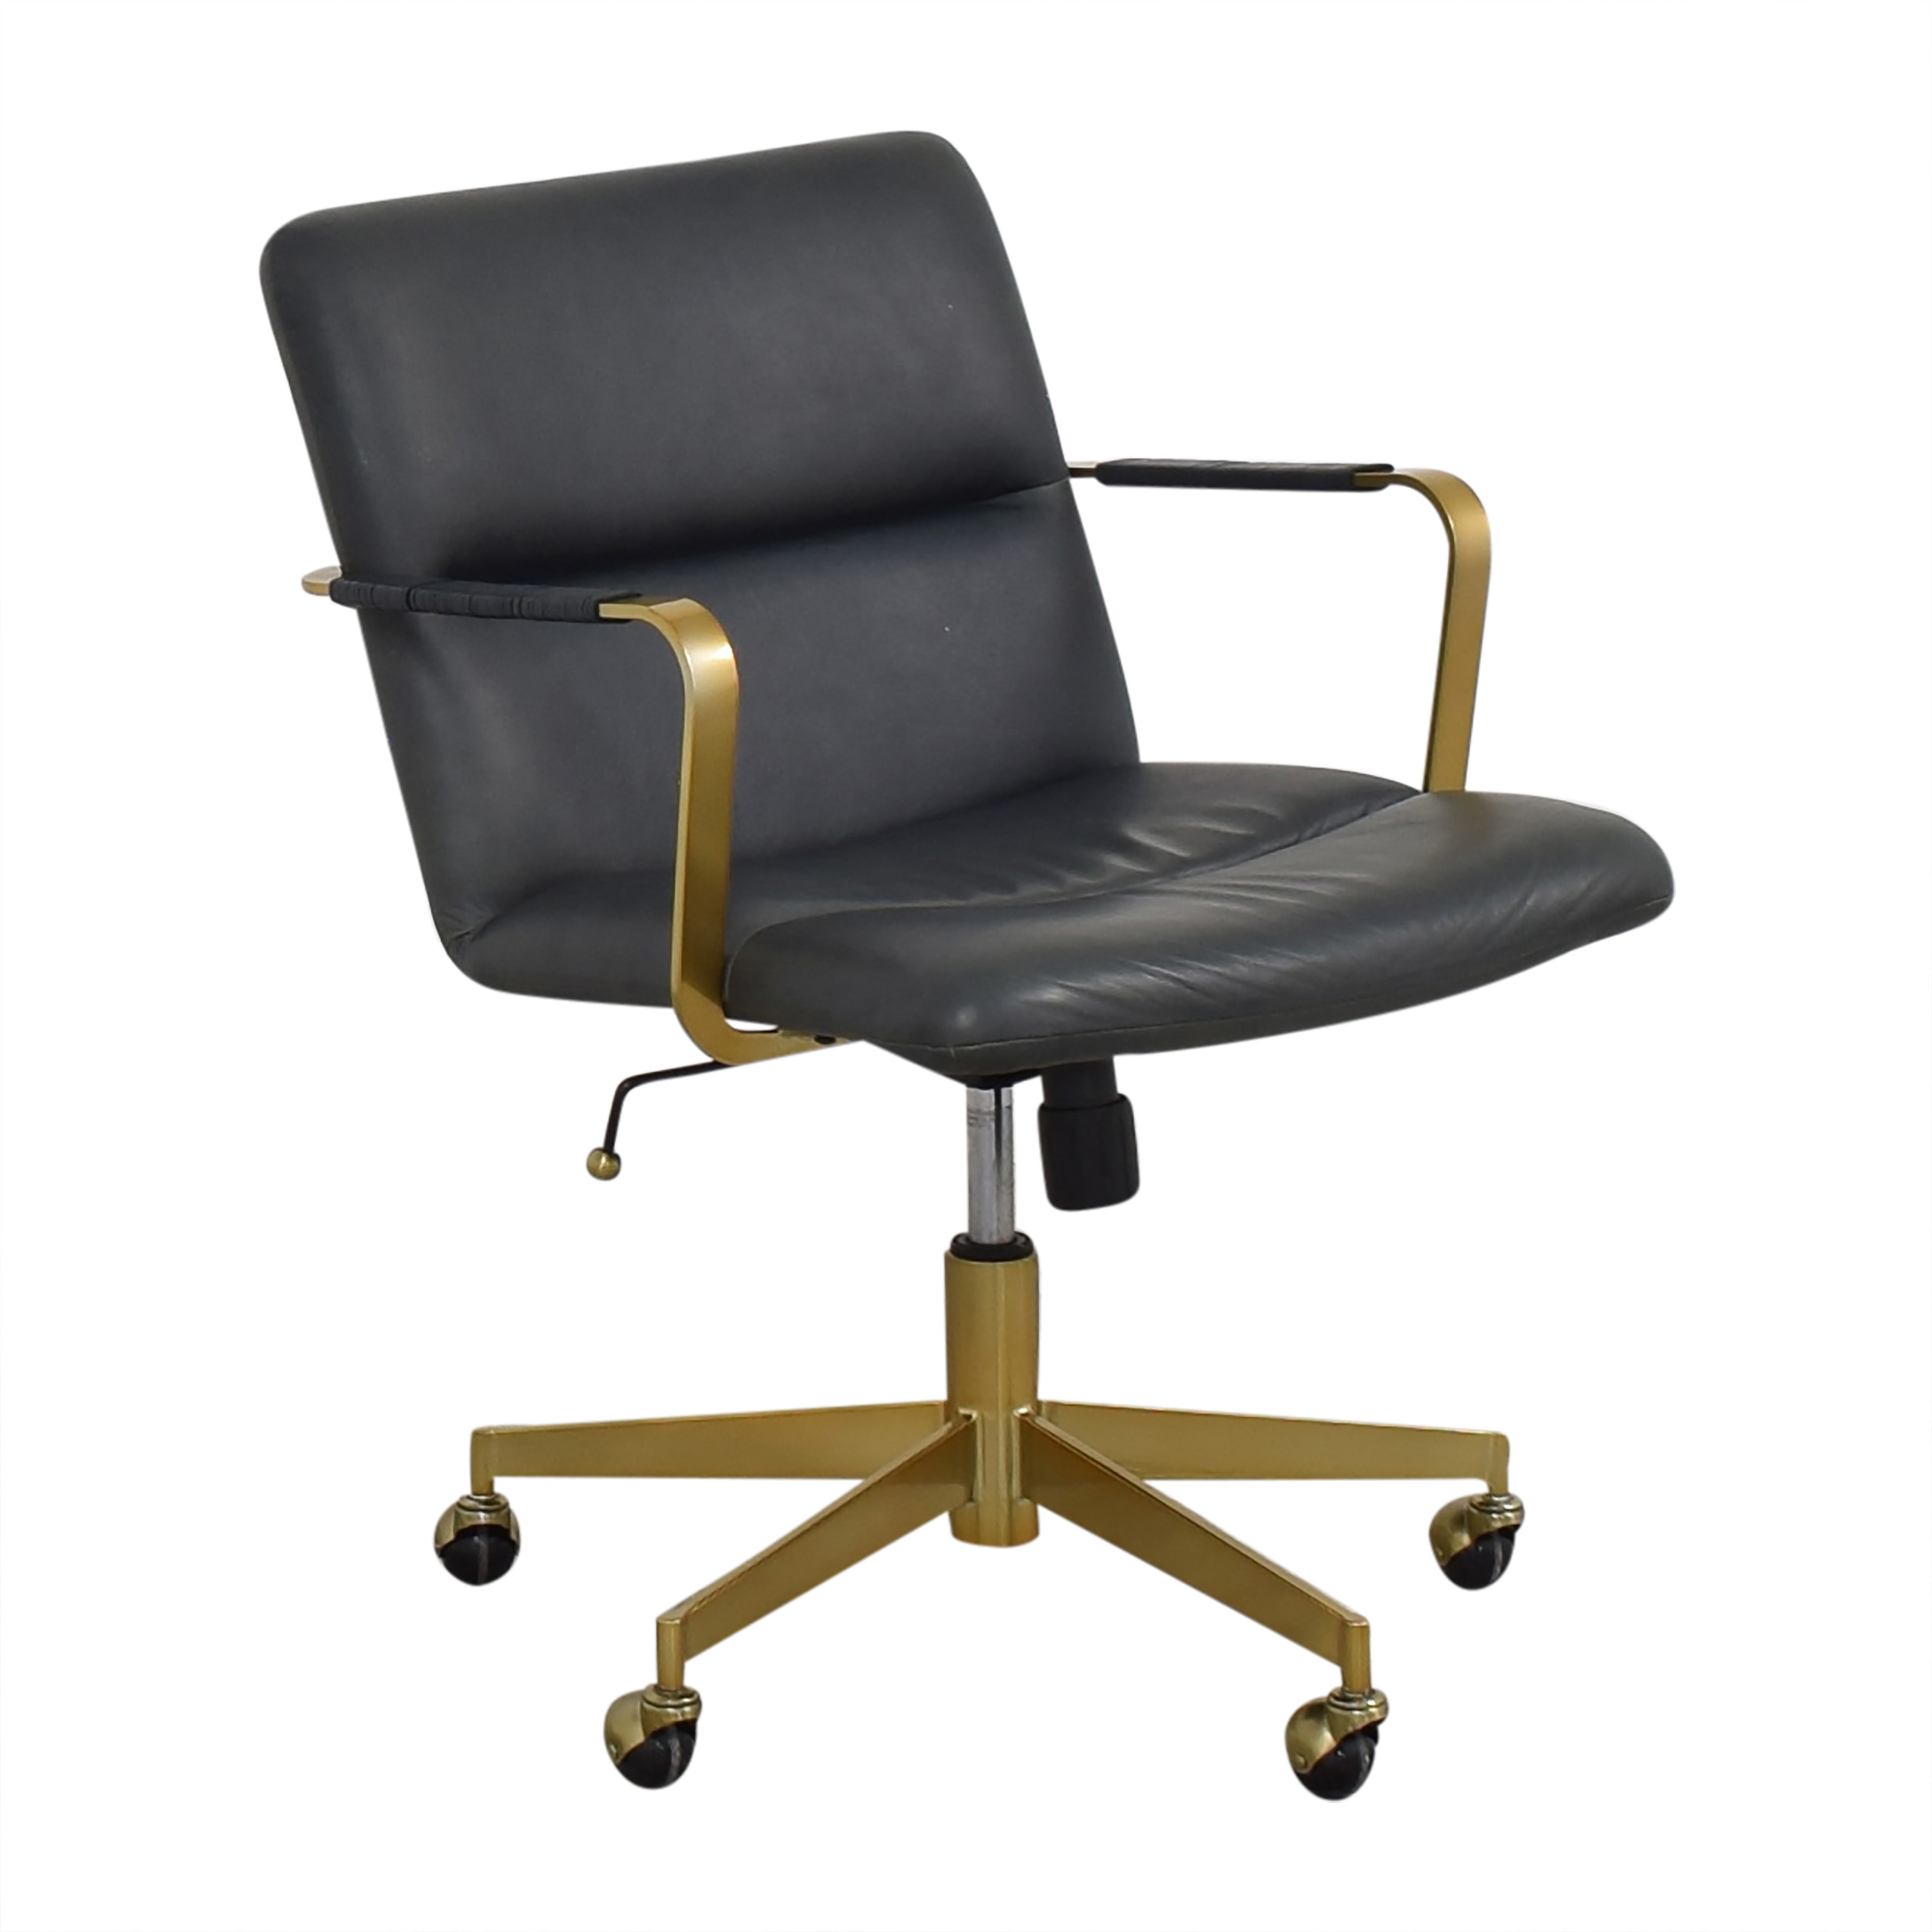 buy West Elm Cooper Mid-Century Office Chair West Elm Home Office Chairs